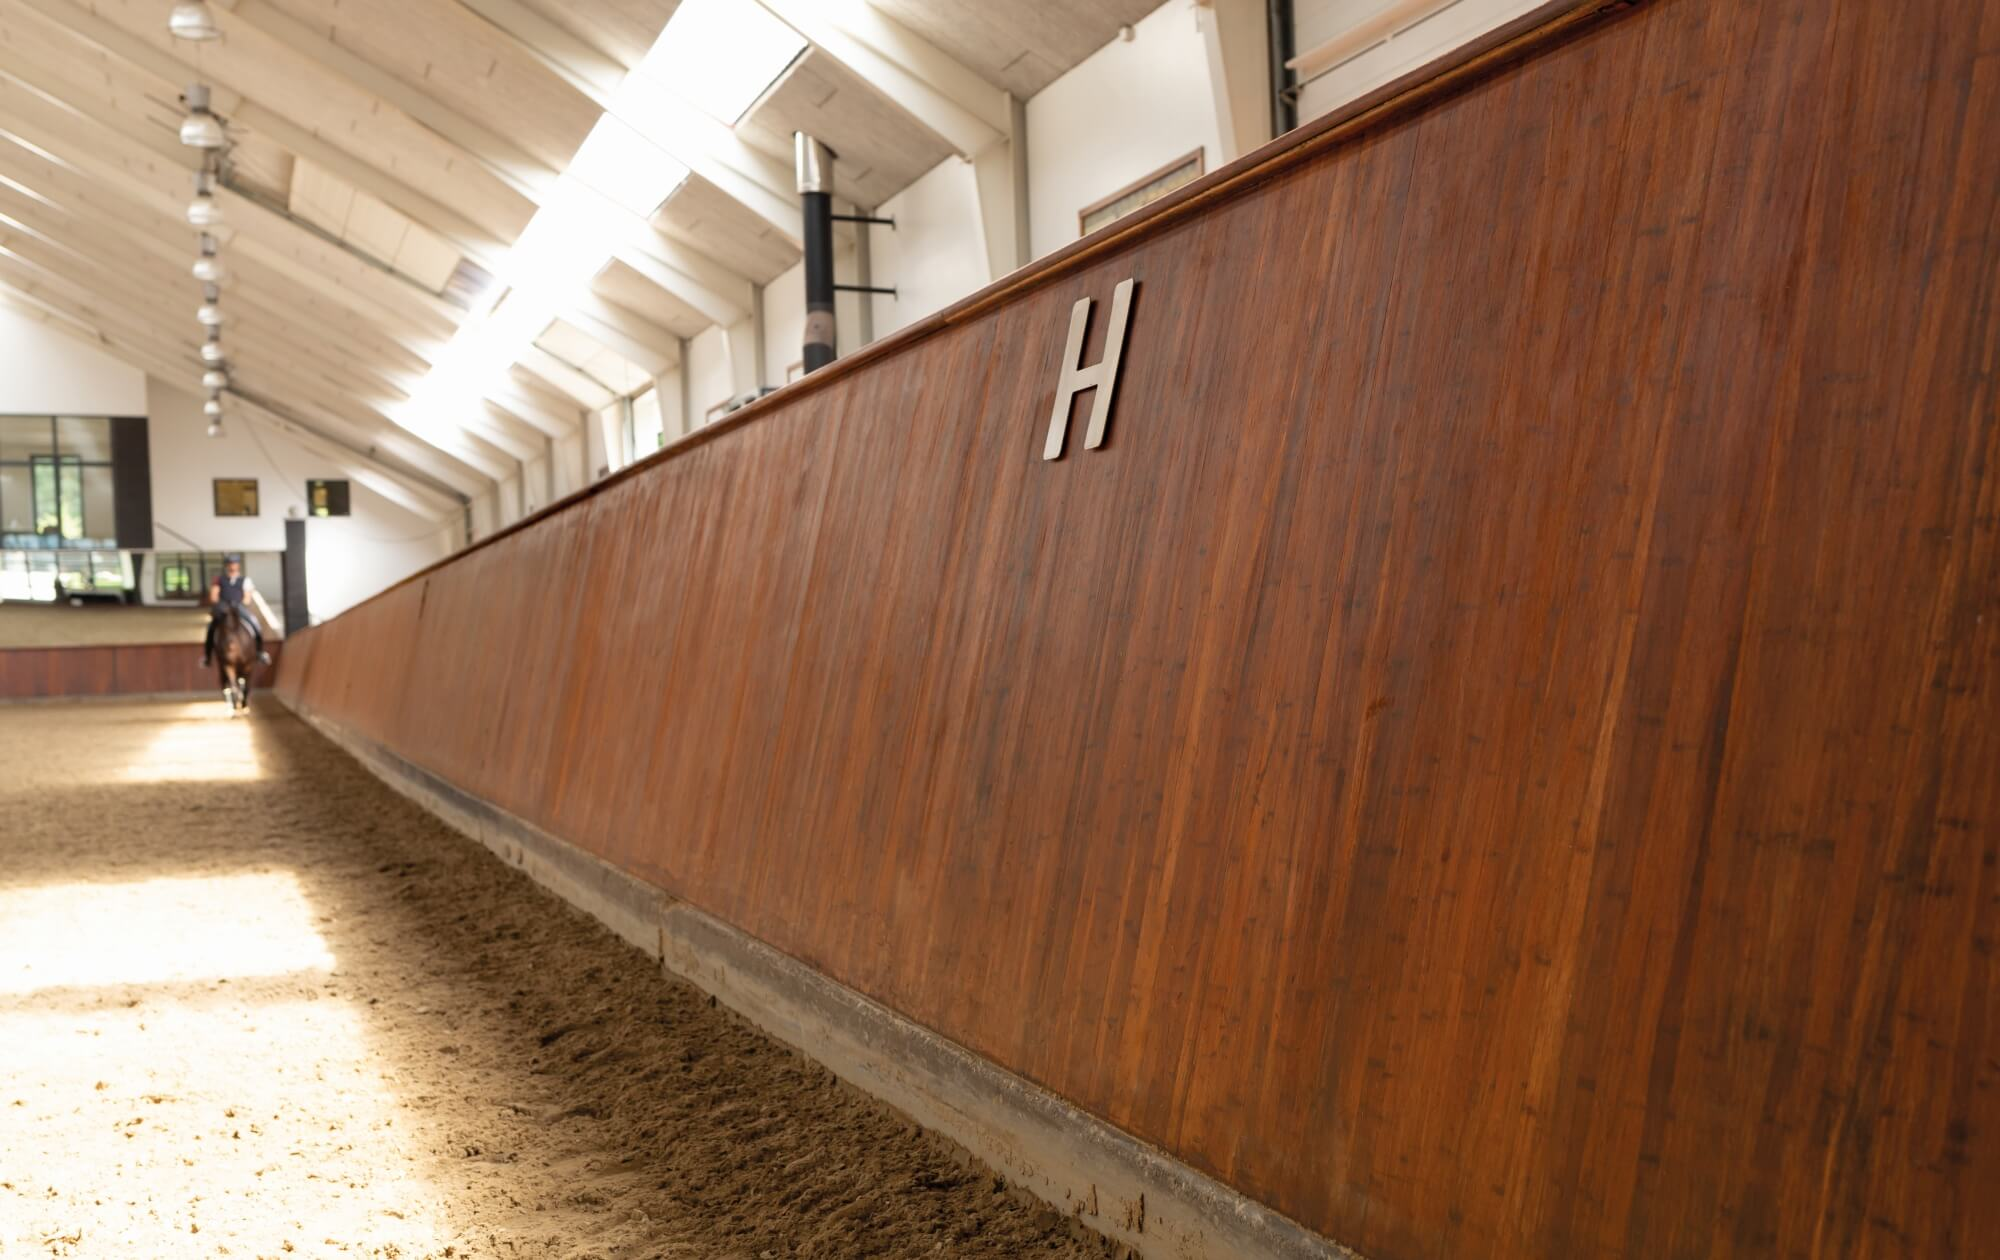 Horse arena wood finish.